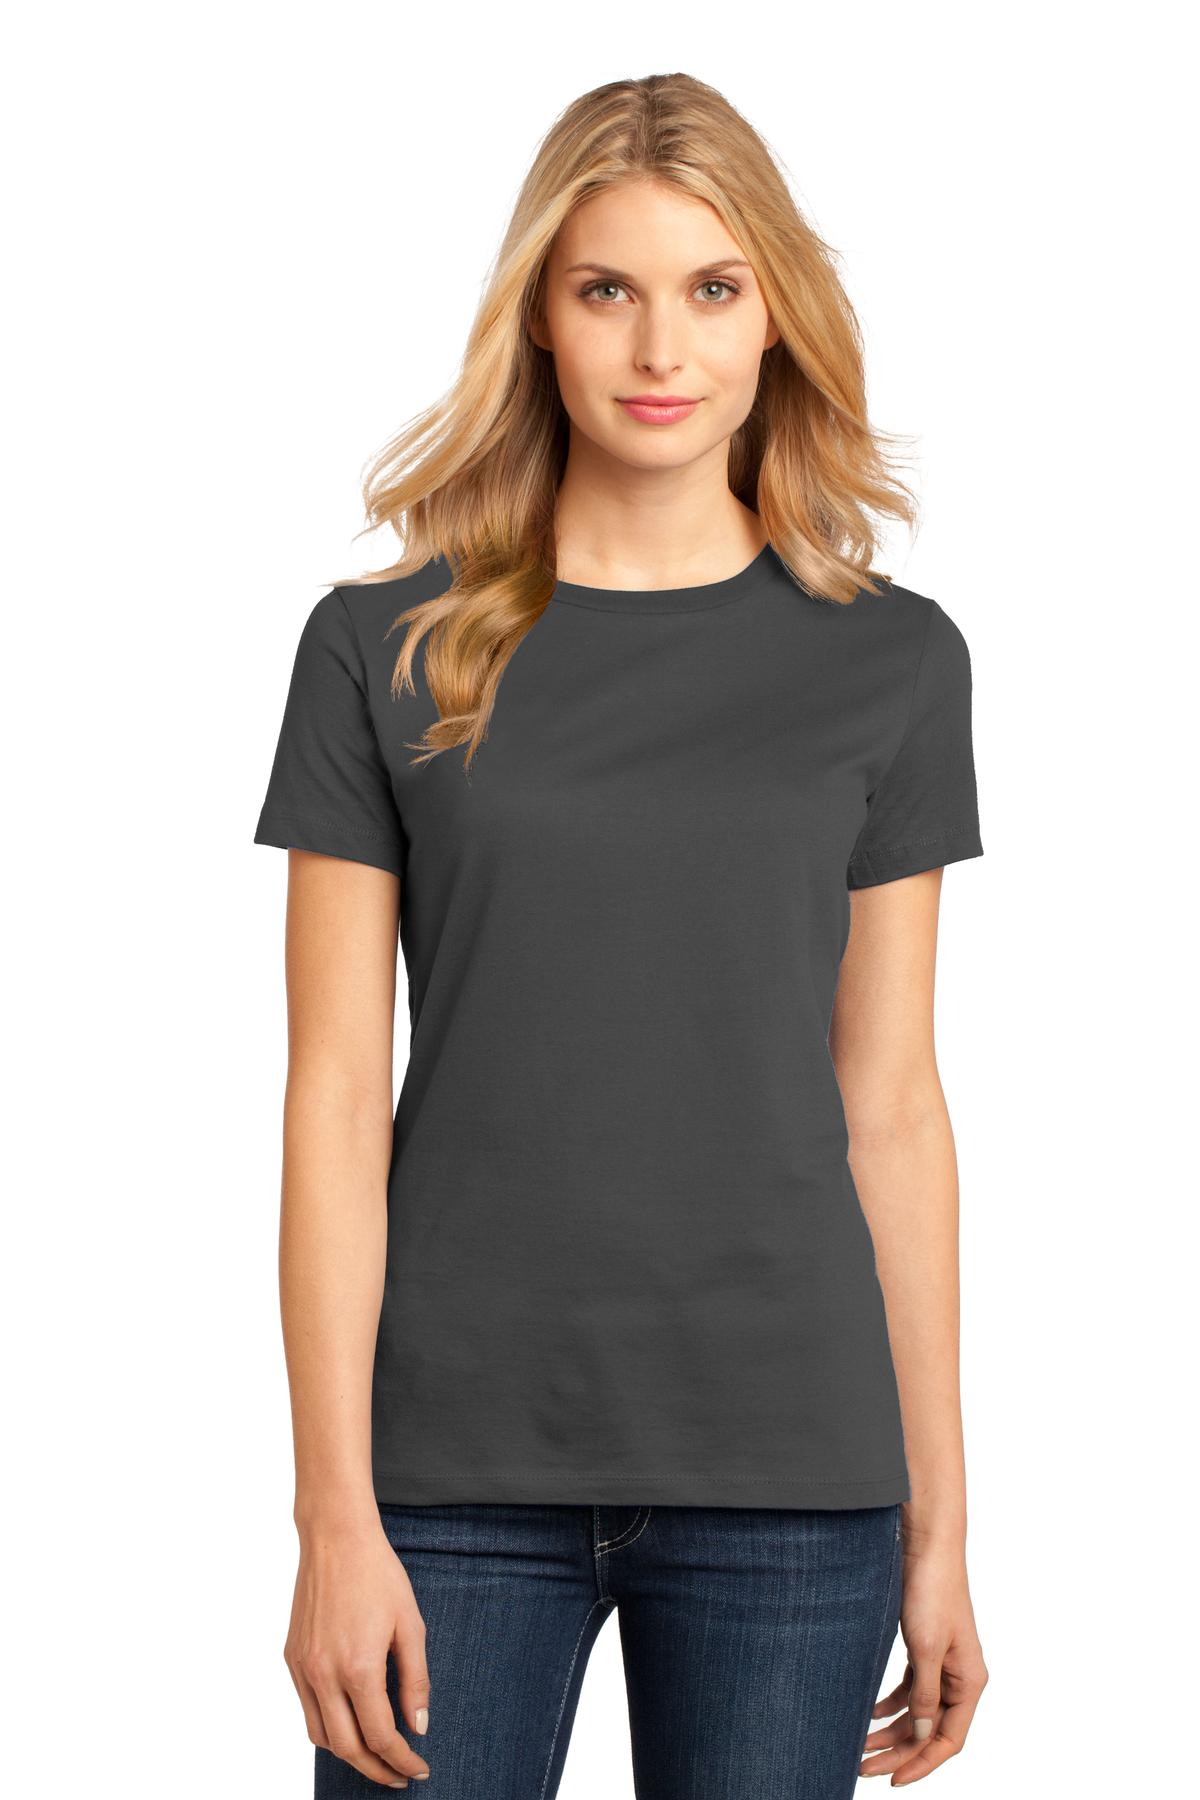 District ®  Women's Perfect Weight ® Tee. DM104L - Charcoal